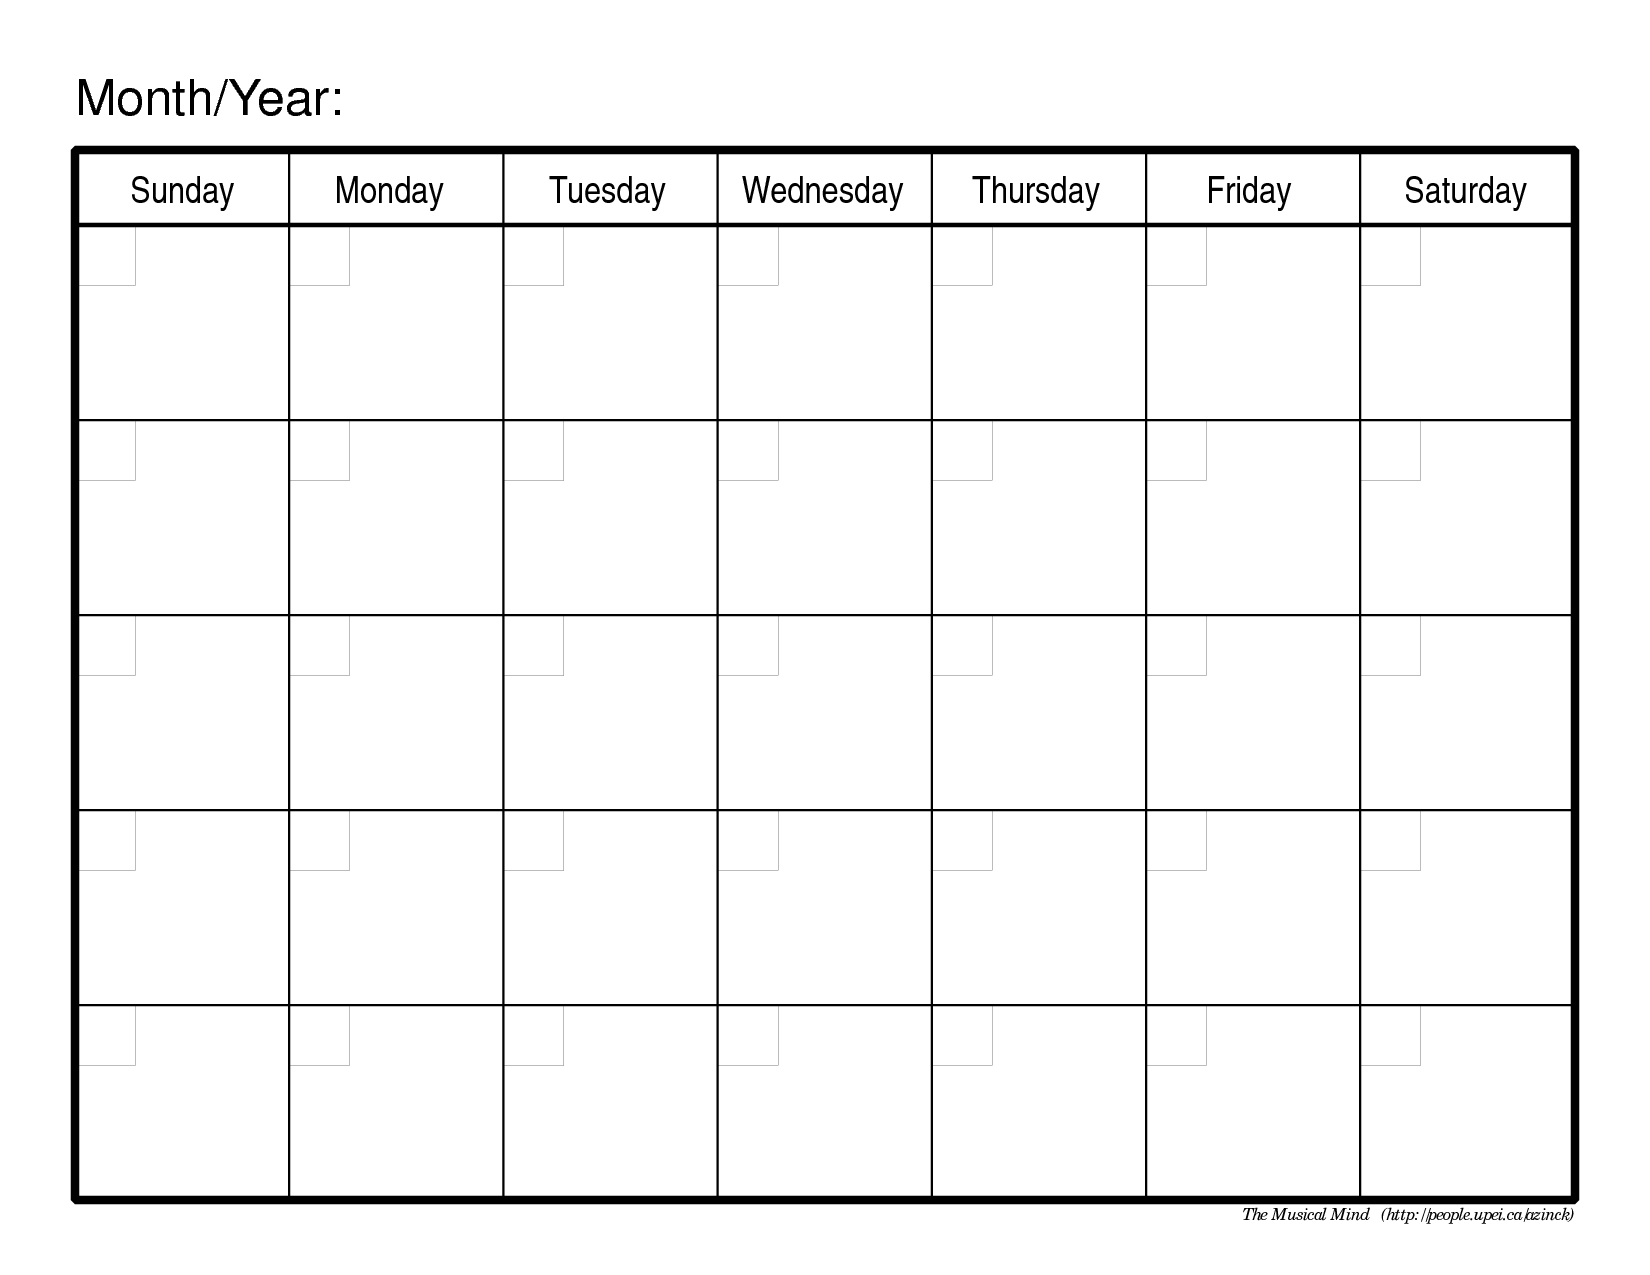 Calendar Templates Printable Free Fieldstation.co | Self Discovery inside Blank Printable Monthly Calendar